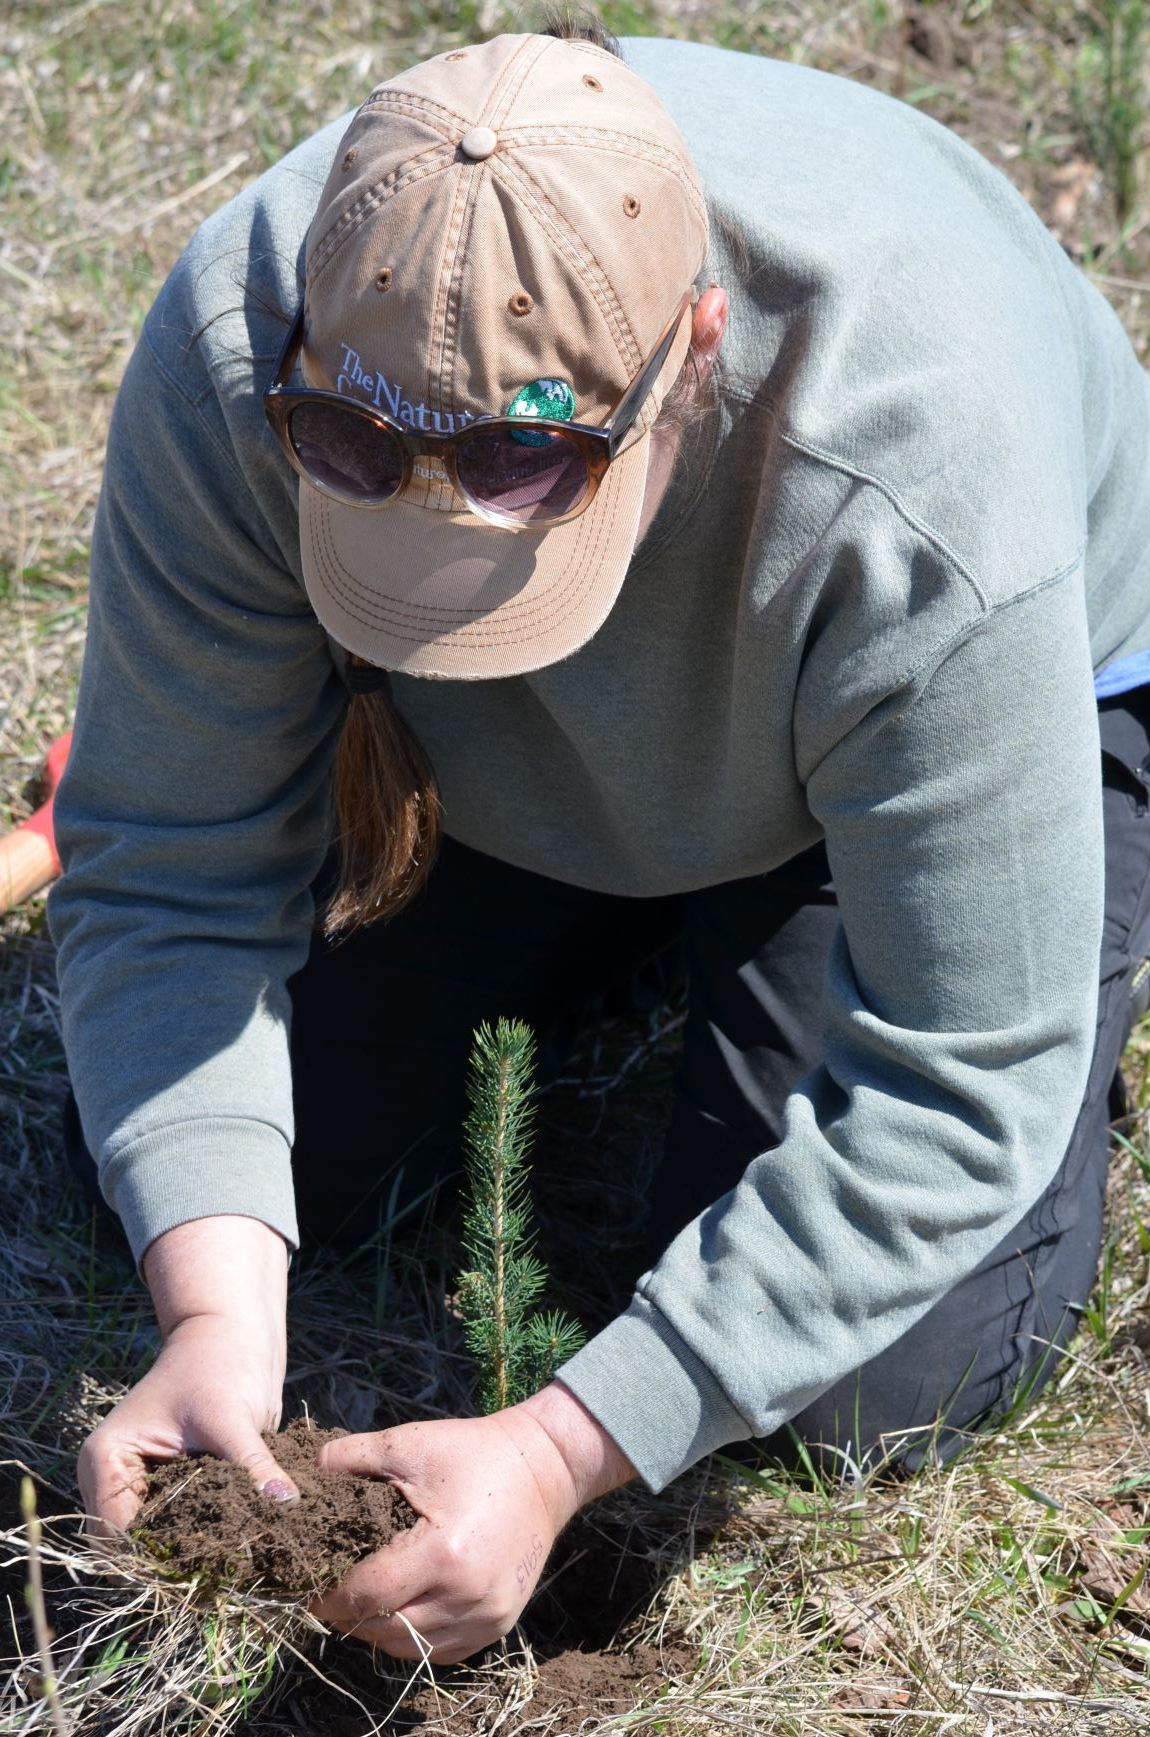 Kari Hagenow, The Nature Conservancy, demonstrates how to plant a tree during the Spring Public Tree Planting in Ellison Bay, WI on May 4, 2019.